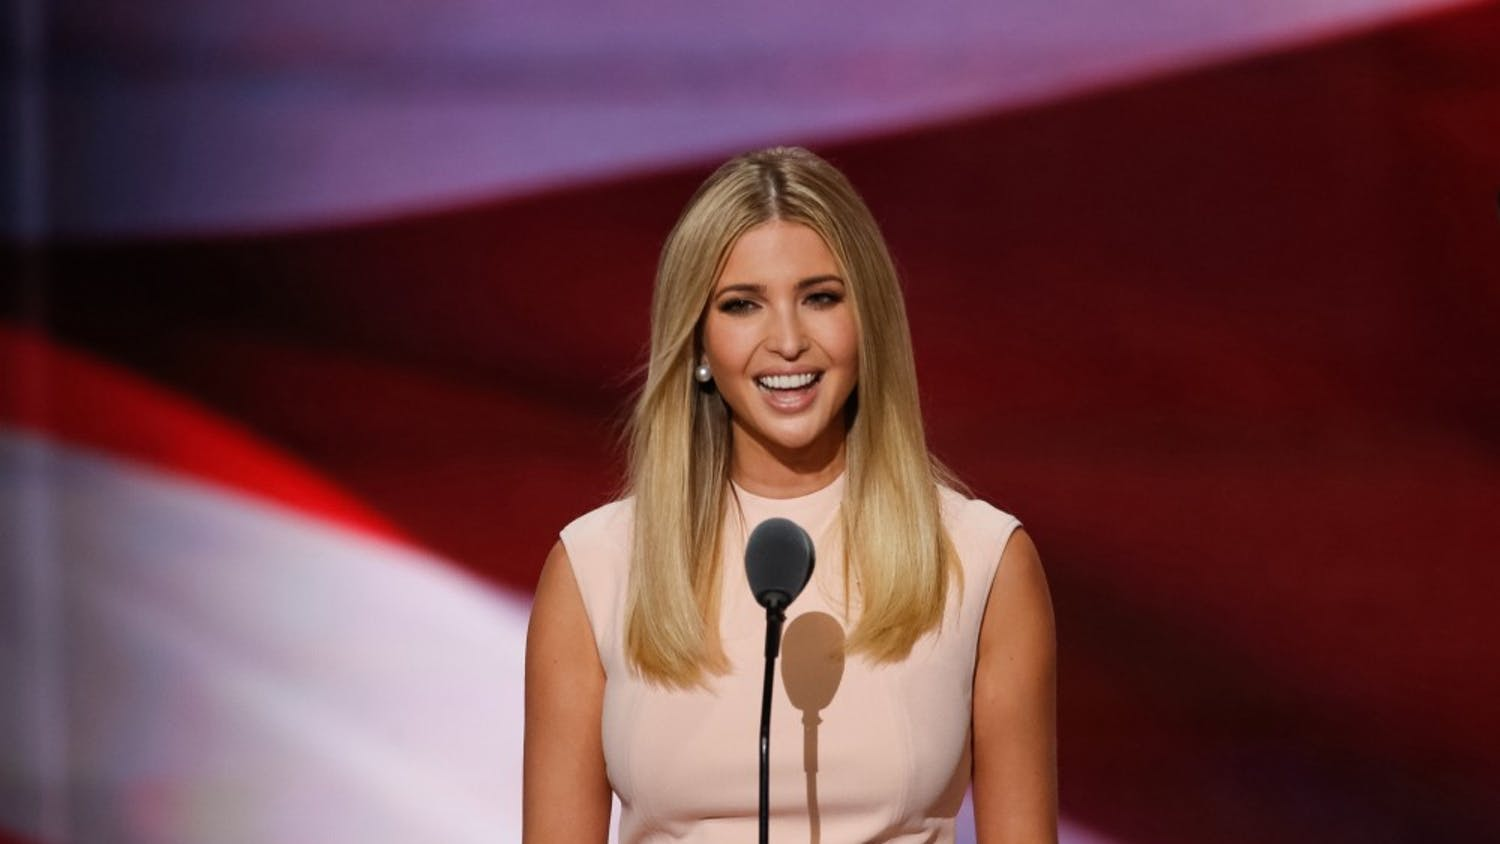 Ivanka Trump speaks during the last day of the Republican National Convention on Thursday, July 21, 2016, at Quicken Loans Arena in Cleveland. (Carolyn Cole/Los Angeles Times/TNS)